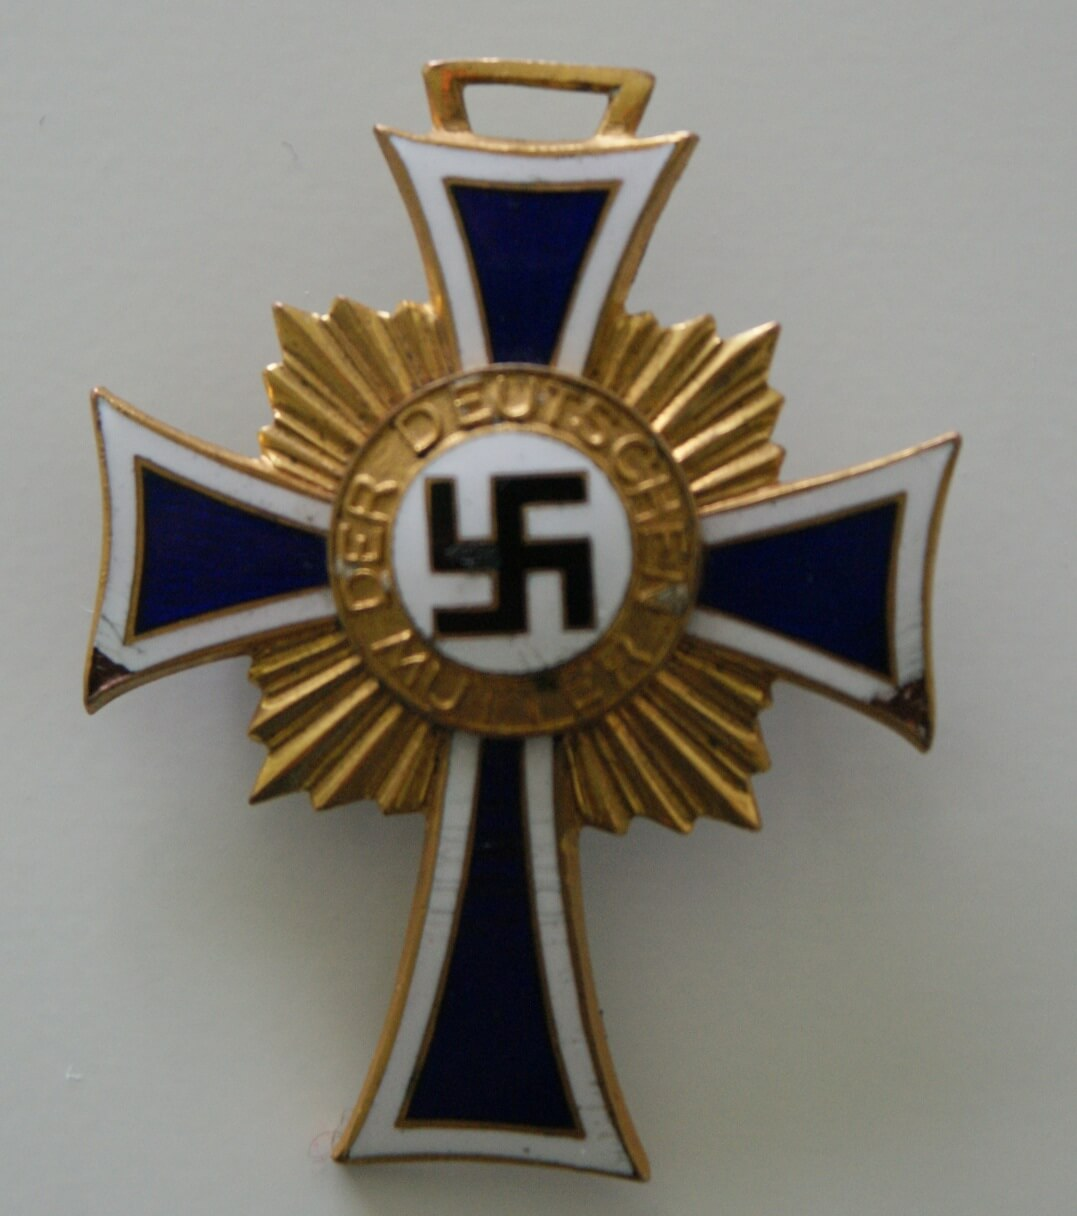 Mutterkreuz in goud